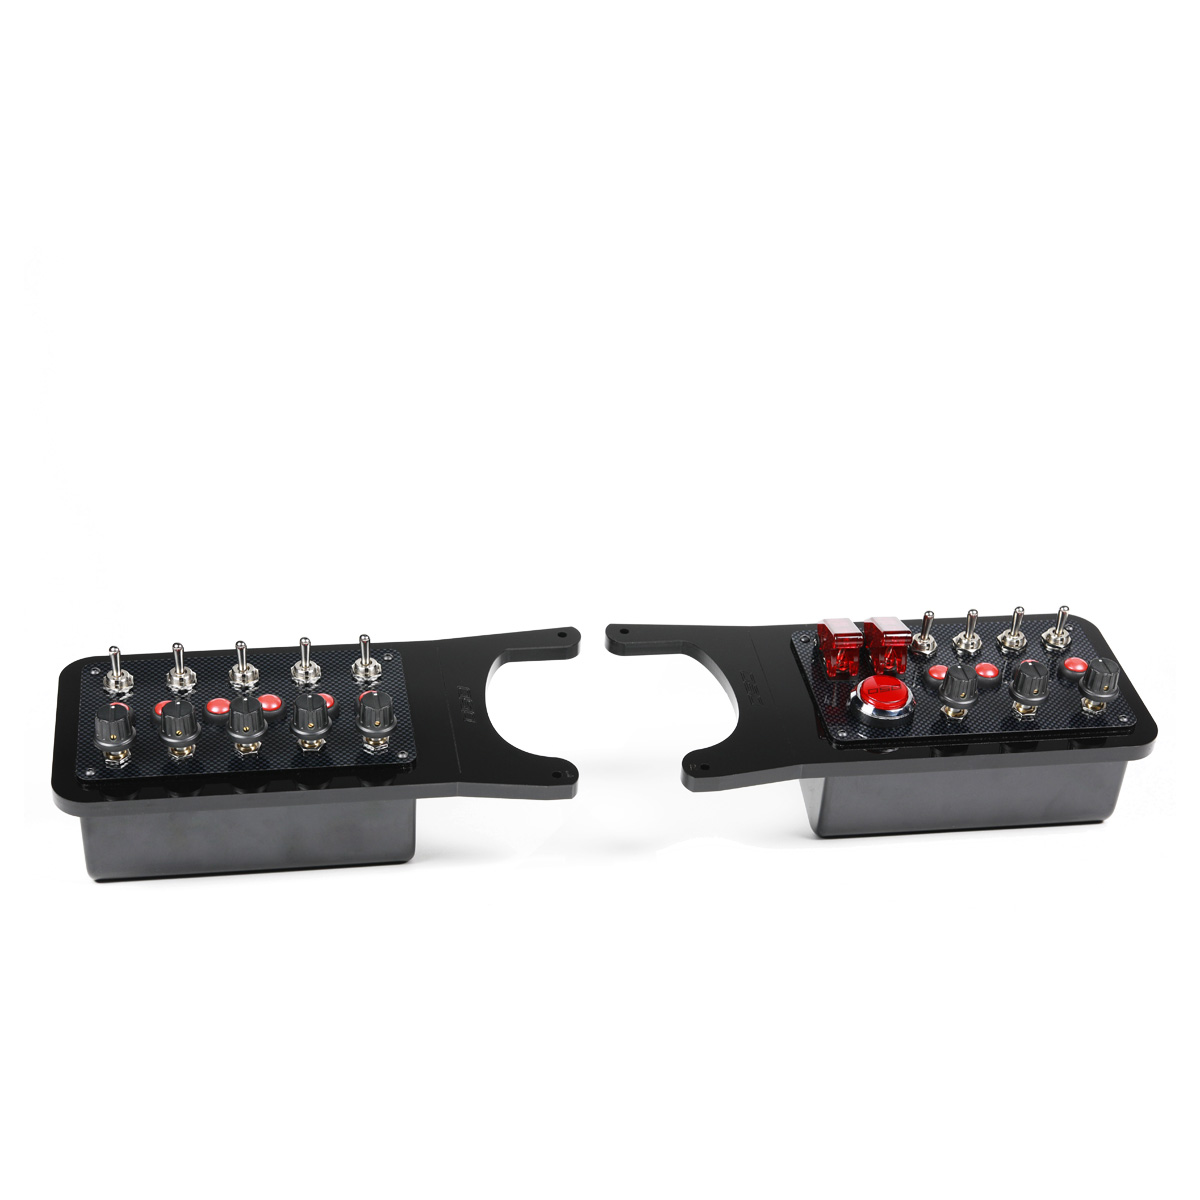 DSD Button Box Pack for Fanatec Clubsport Wheel